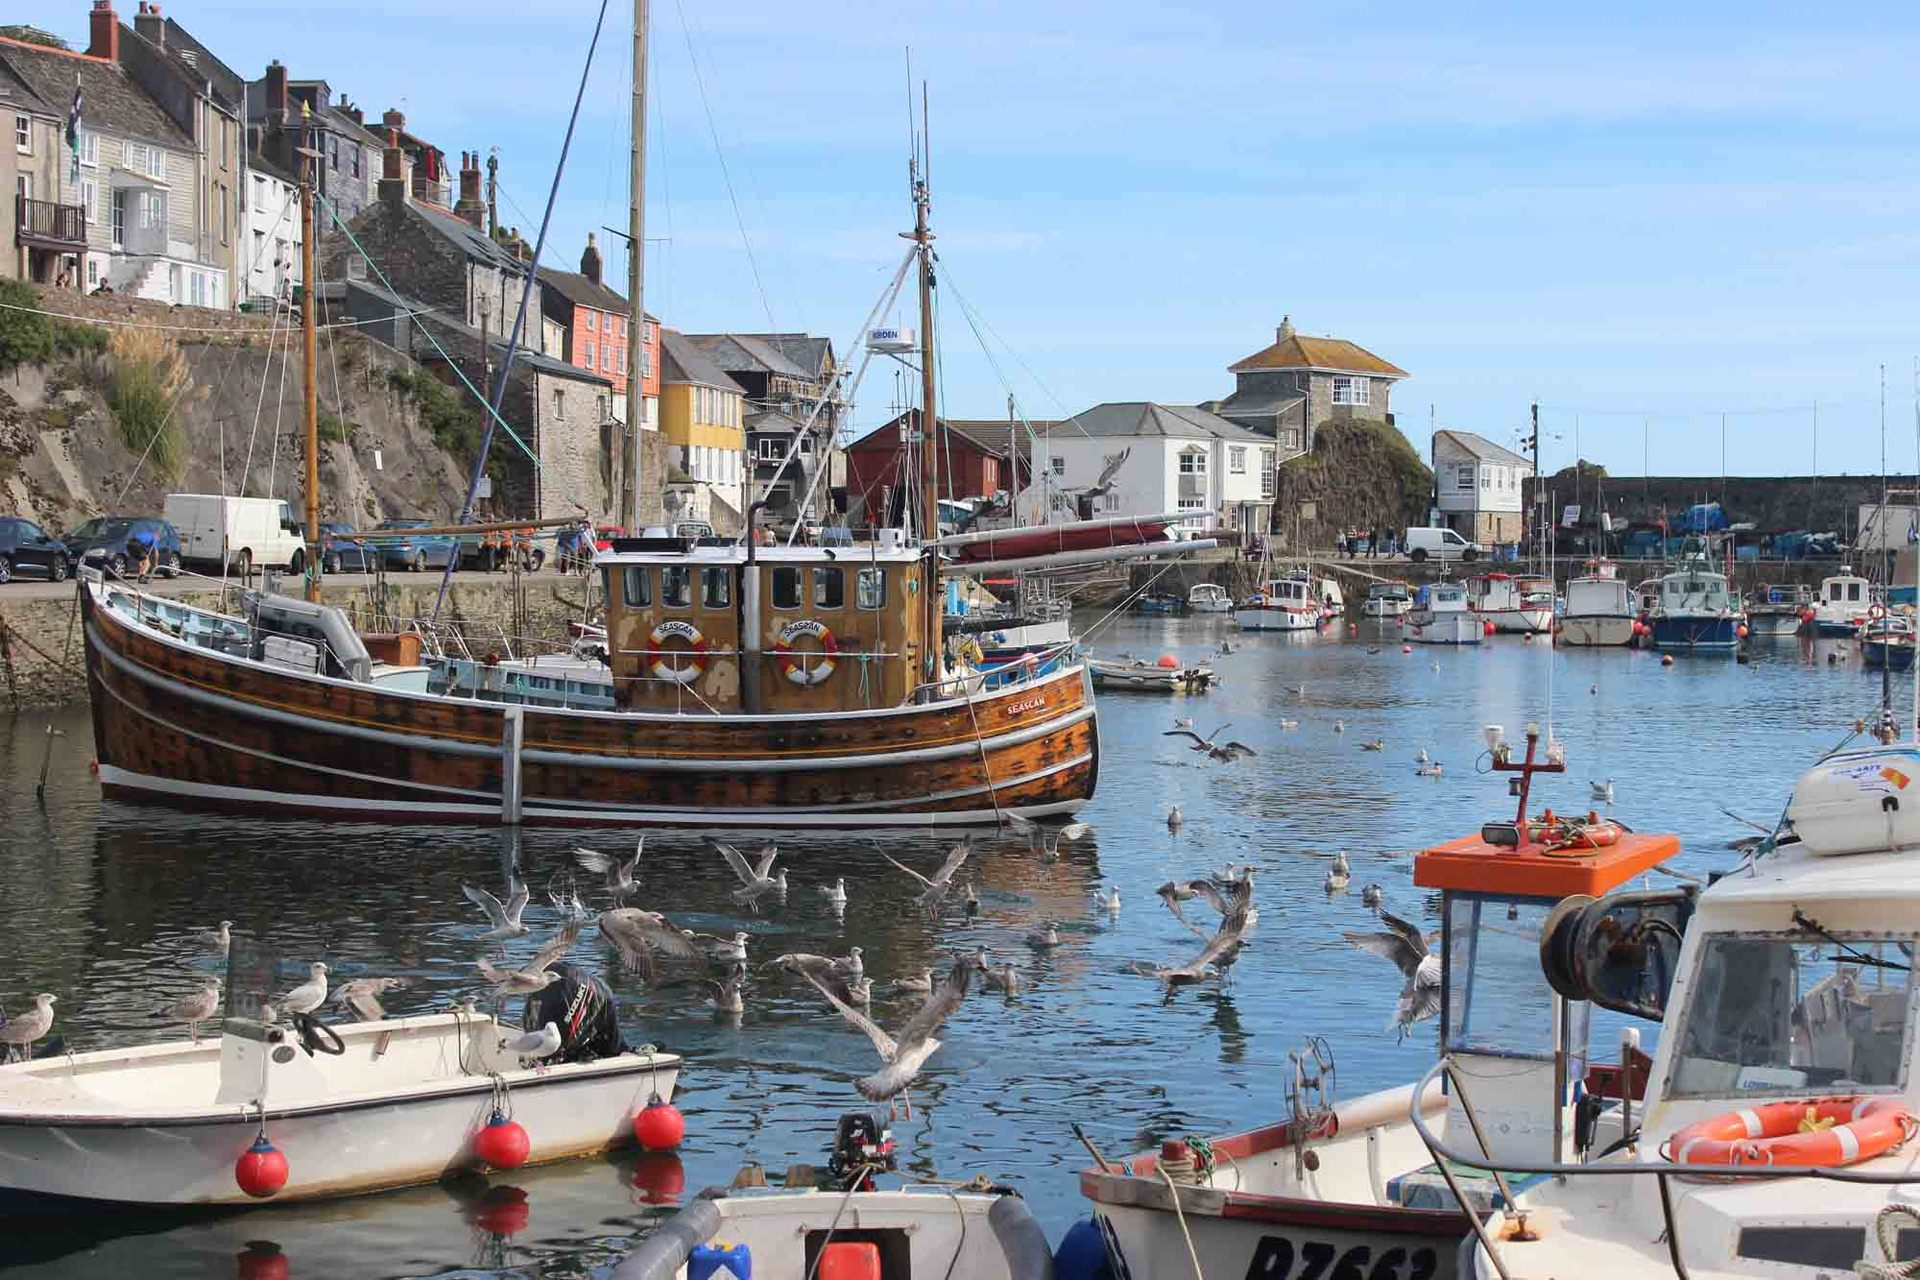 wooden fishing sail boat in Mevagissey harbour L A Kent Silent Gull Inspector Treloar Mysteries